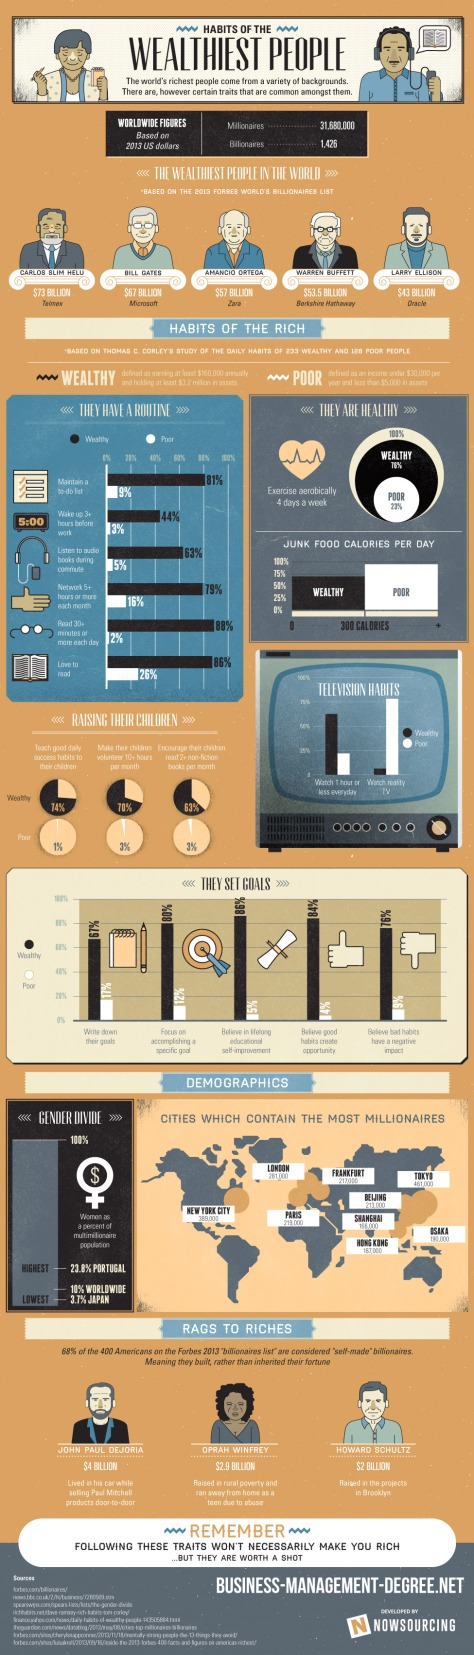 habits-worlds-wealthiest-people-infographic